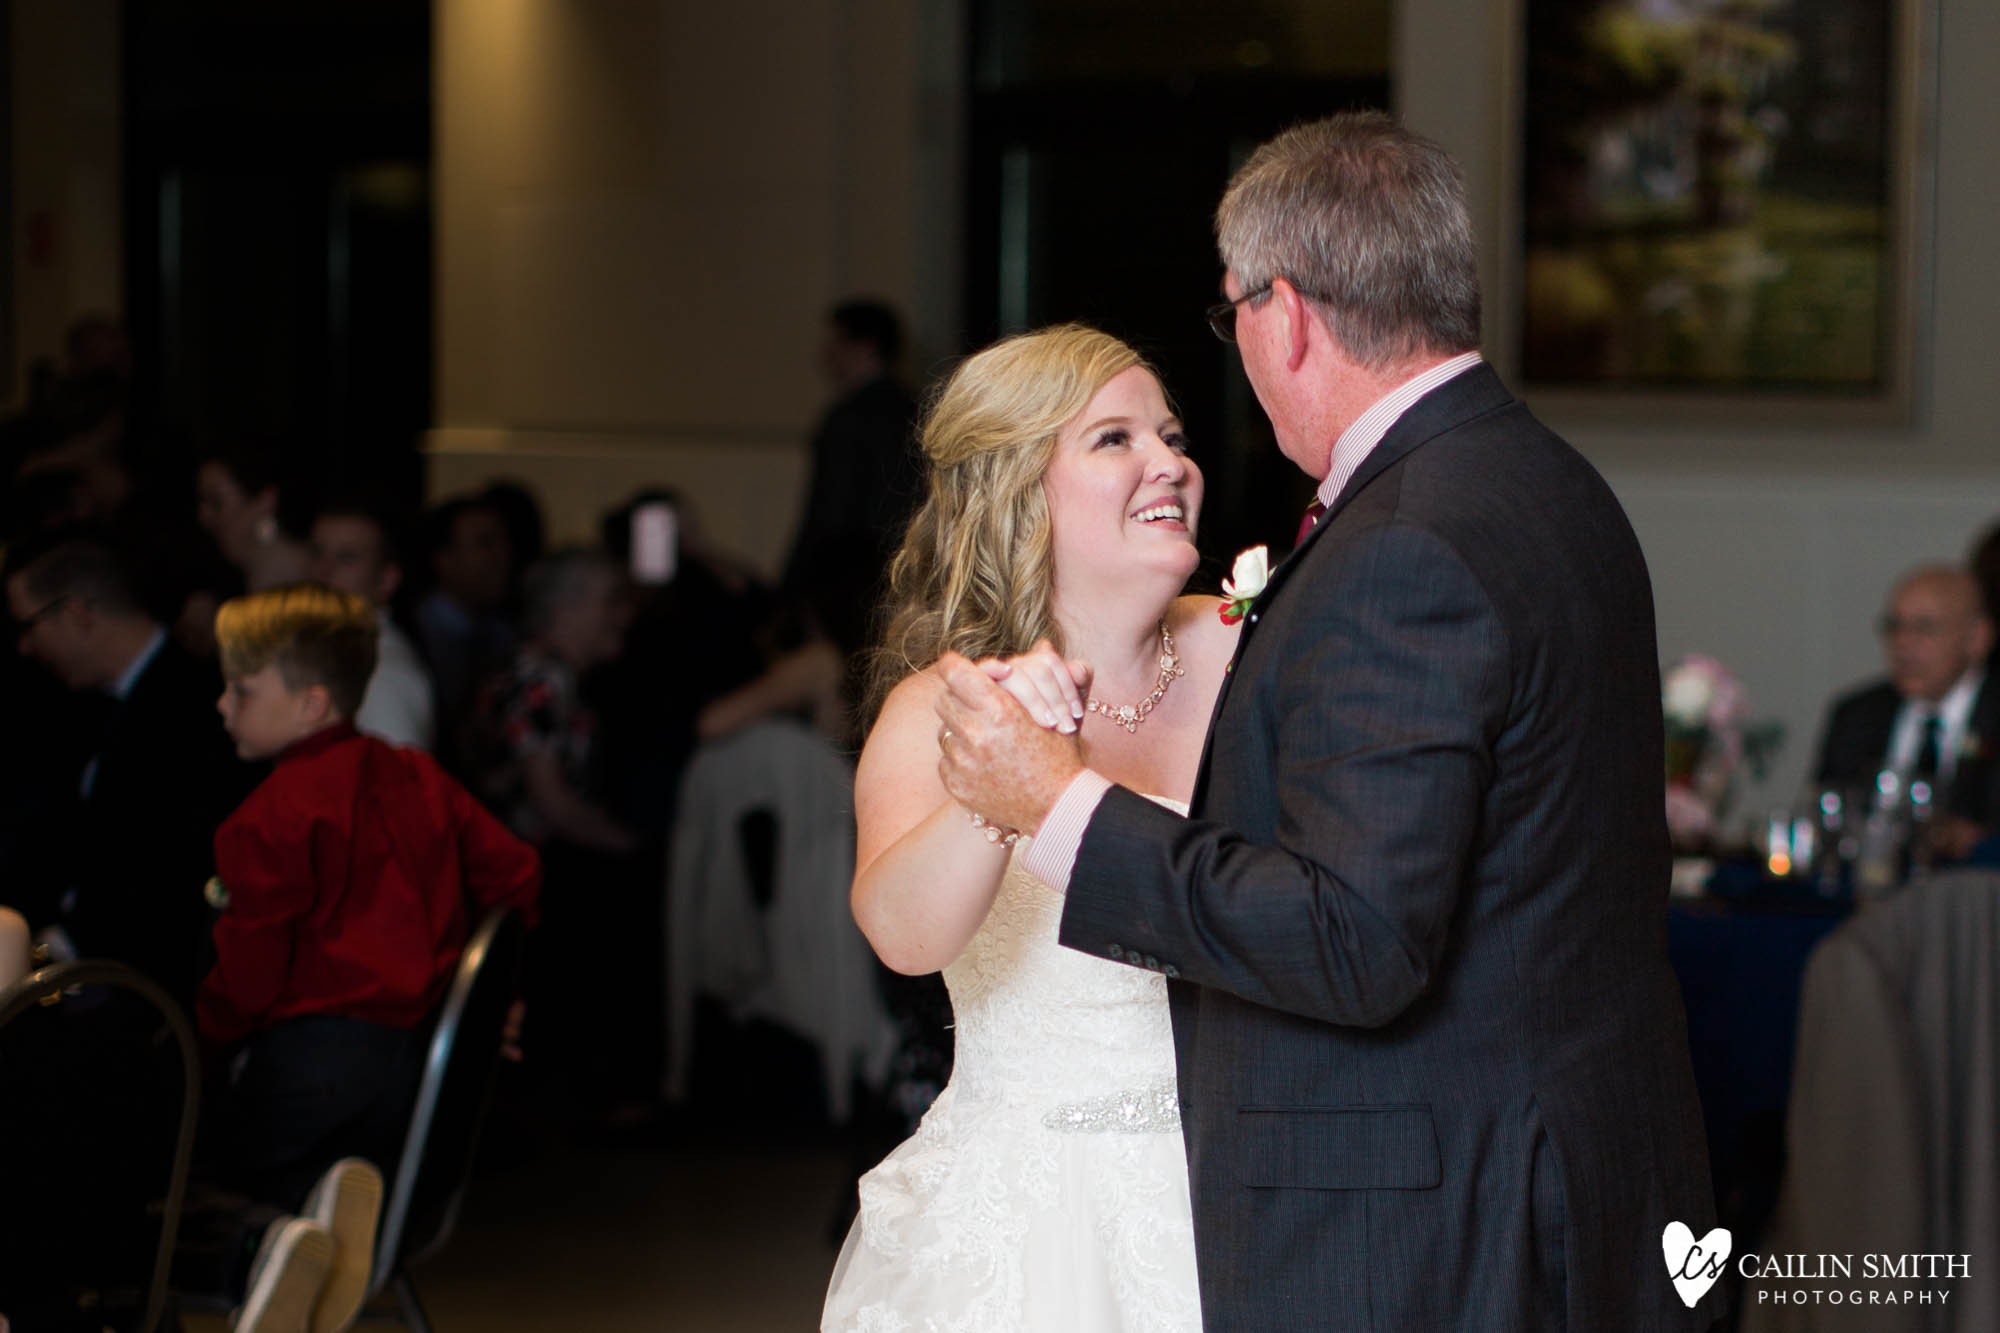 Christie_Nathan_Wedding_Photography_0066.jpg